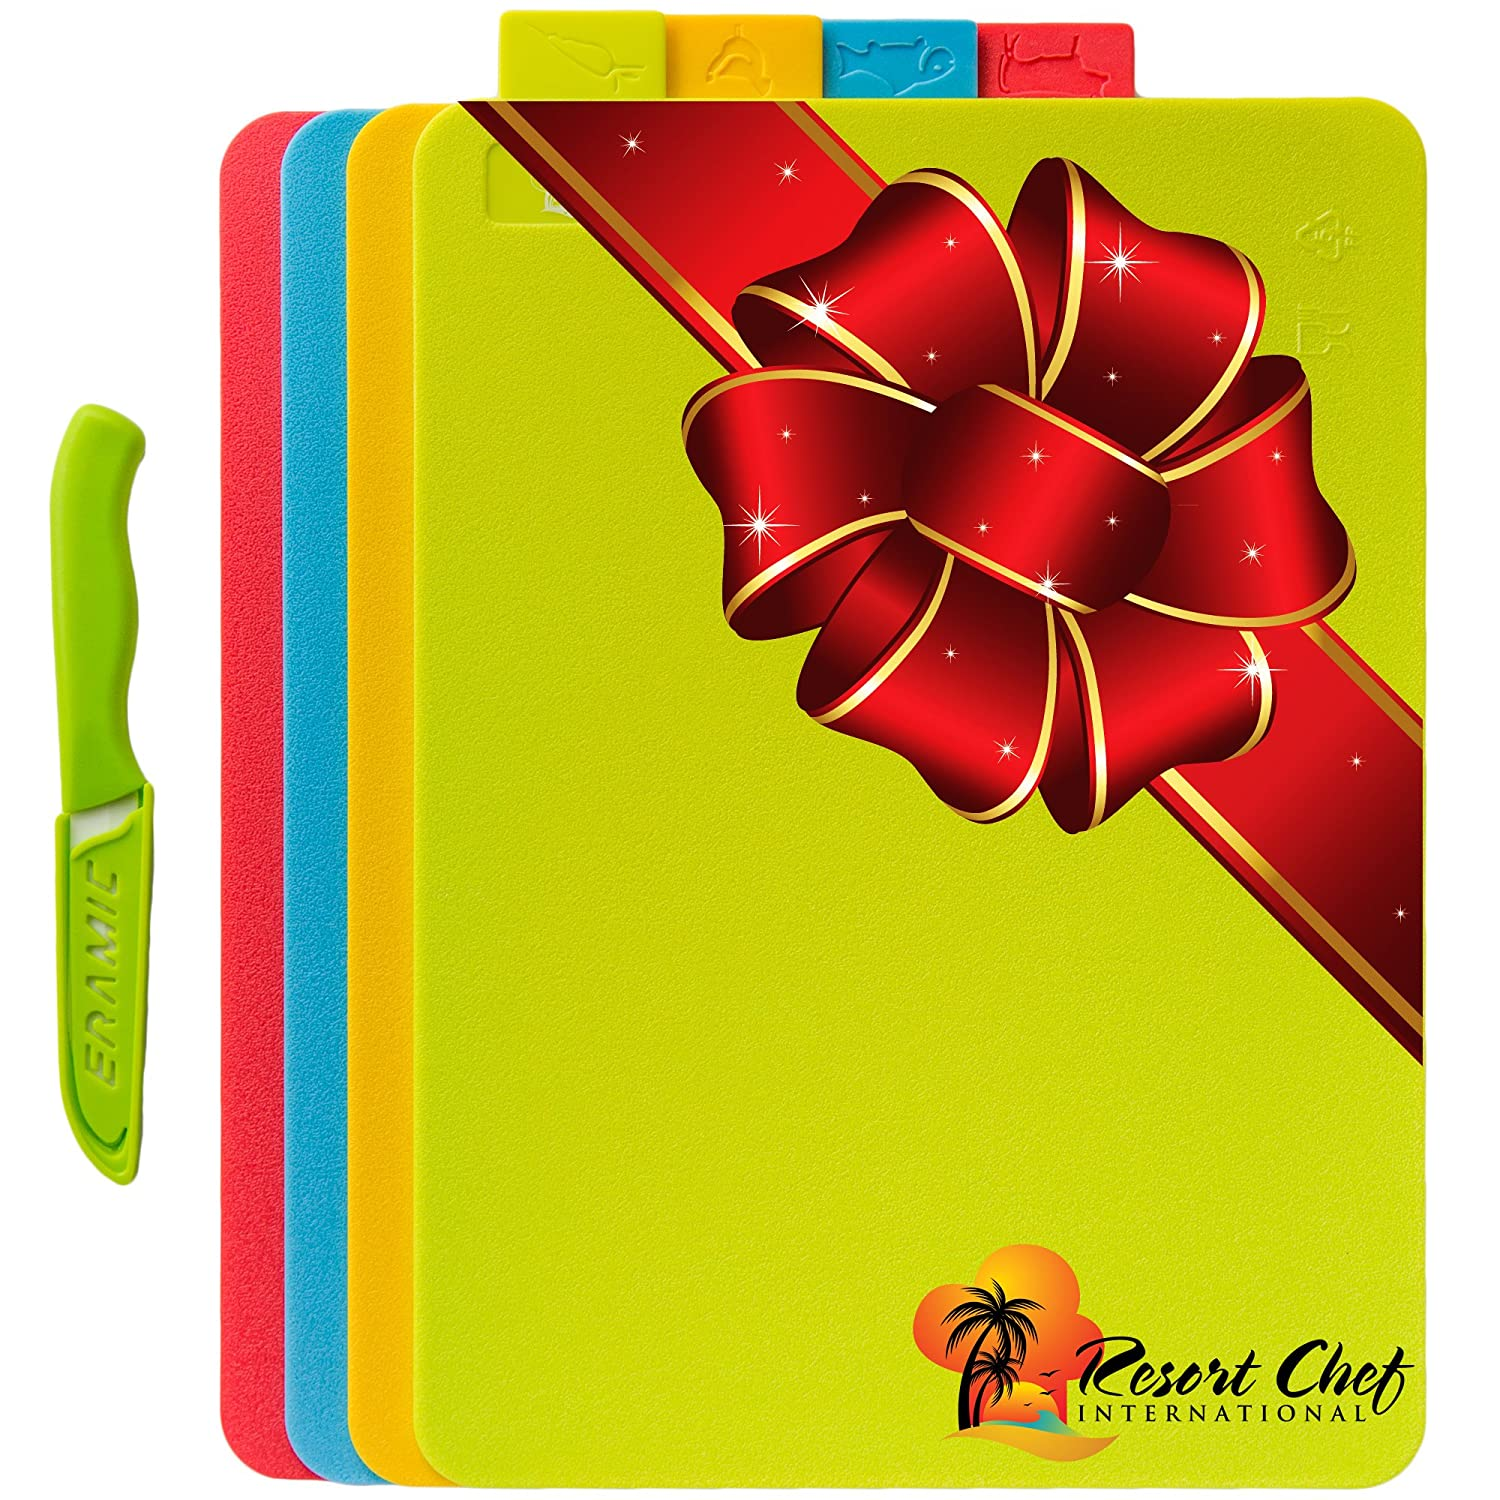 Cutting Board 4 Piece Set with Food Icons - Dishwasher Safe, Includes FREE Ceramic Knife